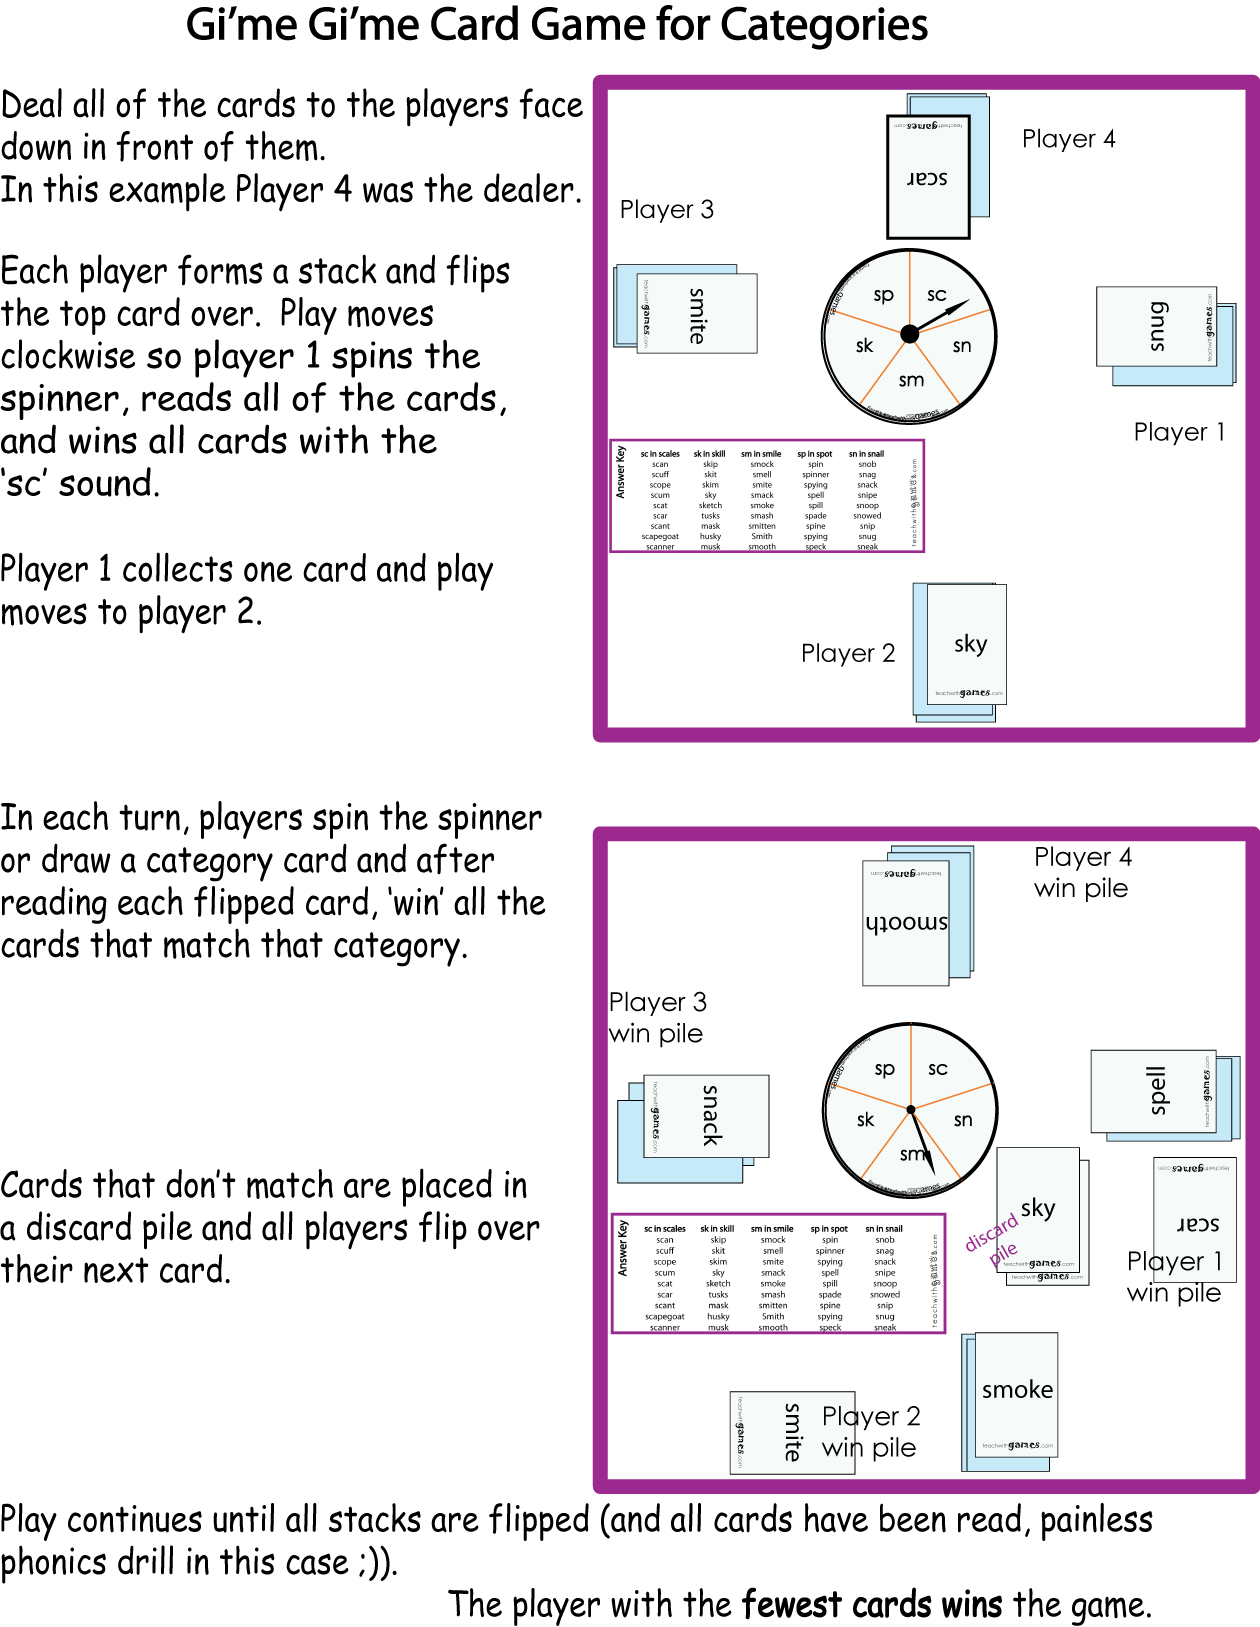 Rules for our Game Creator Gi'me Gi'me Card Game.